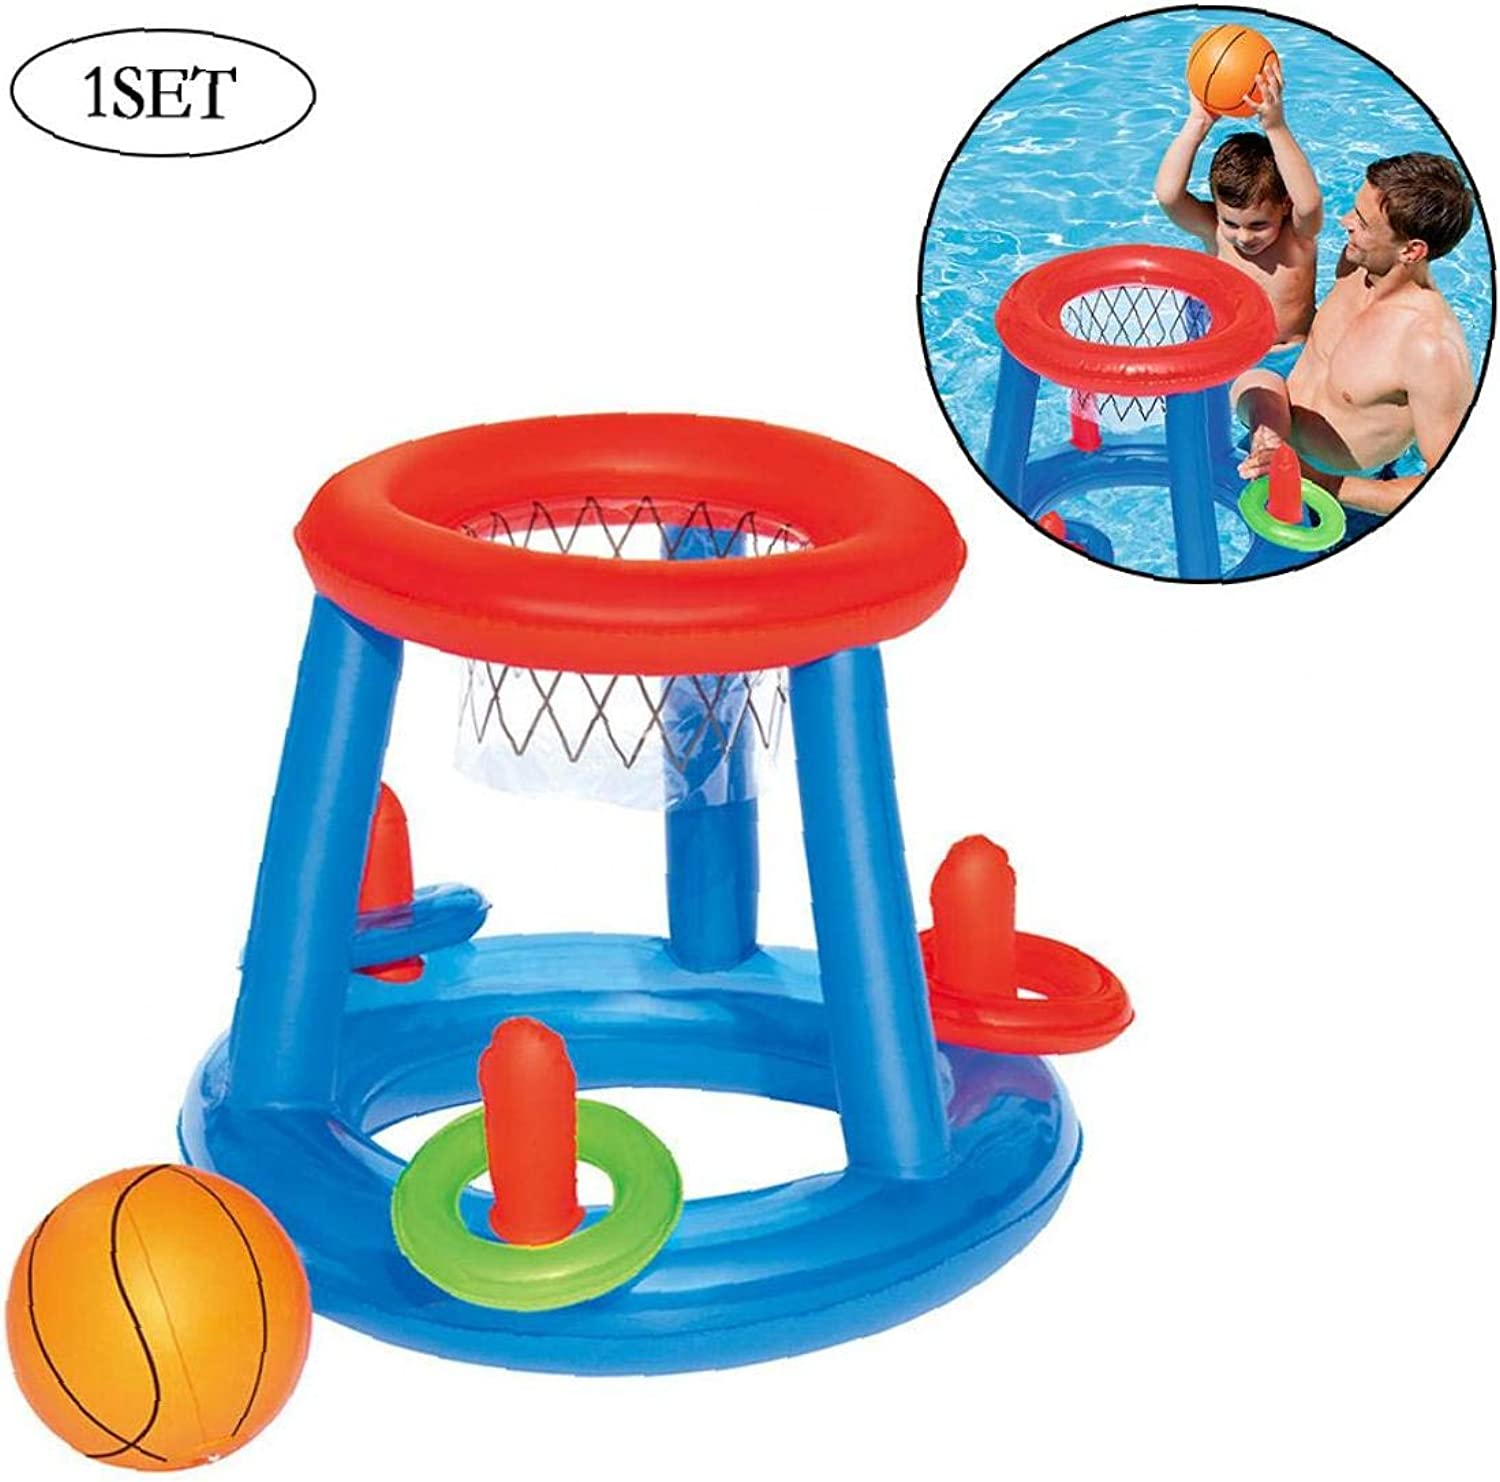 Inflatable Pool Beach Ball Float Swimming Toys Air Mattress for Kid